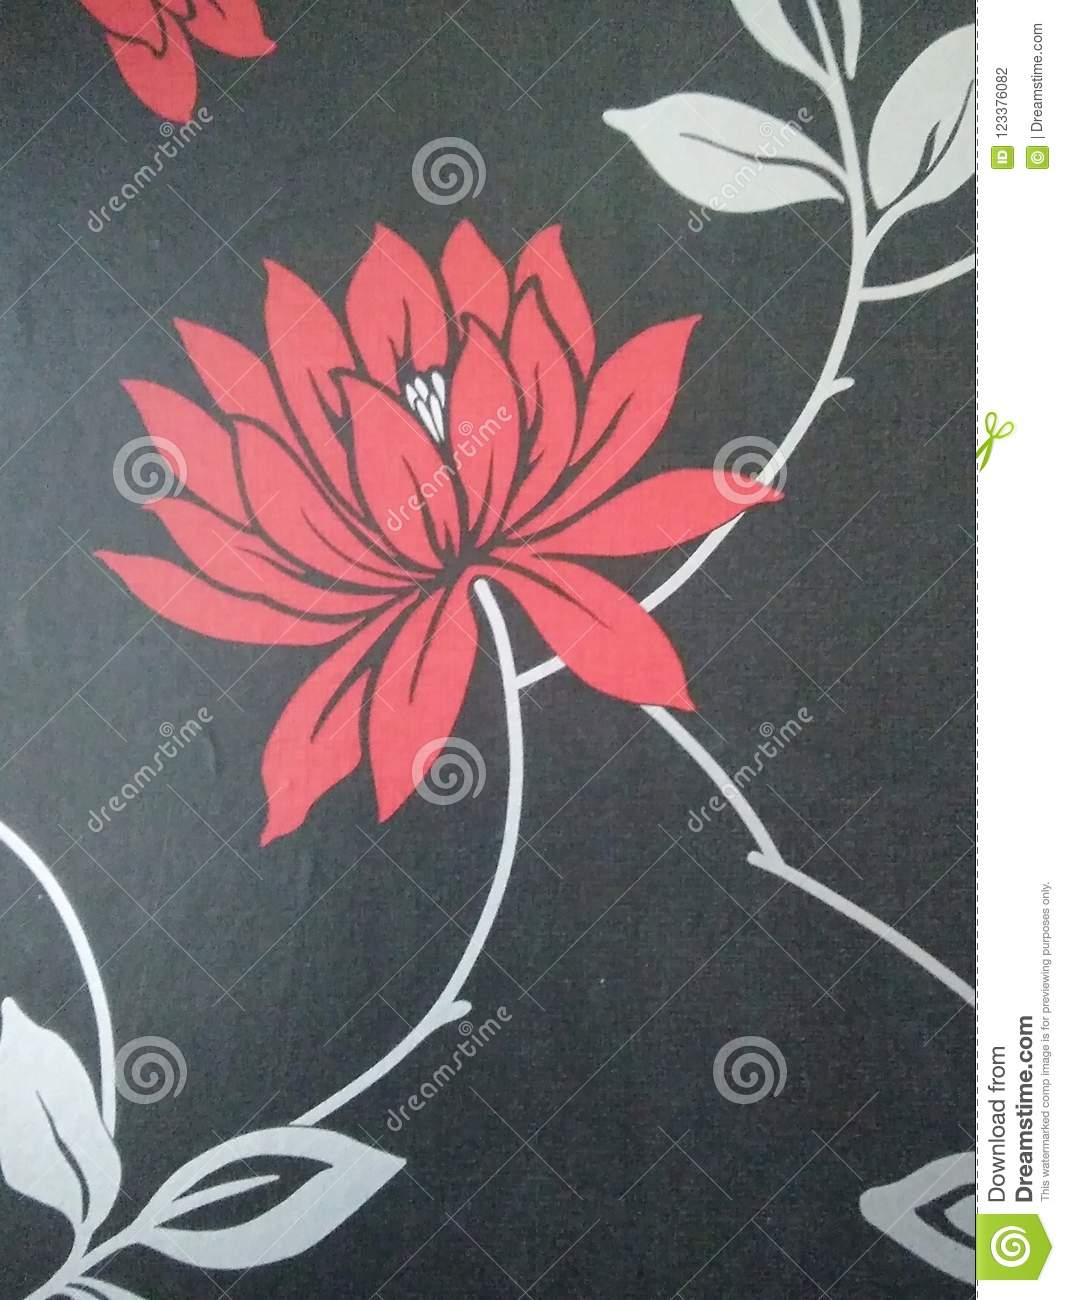 Wallpaper In The Background Red Flowers On A Black Silver Leaflets Wall